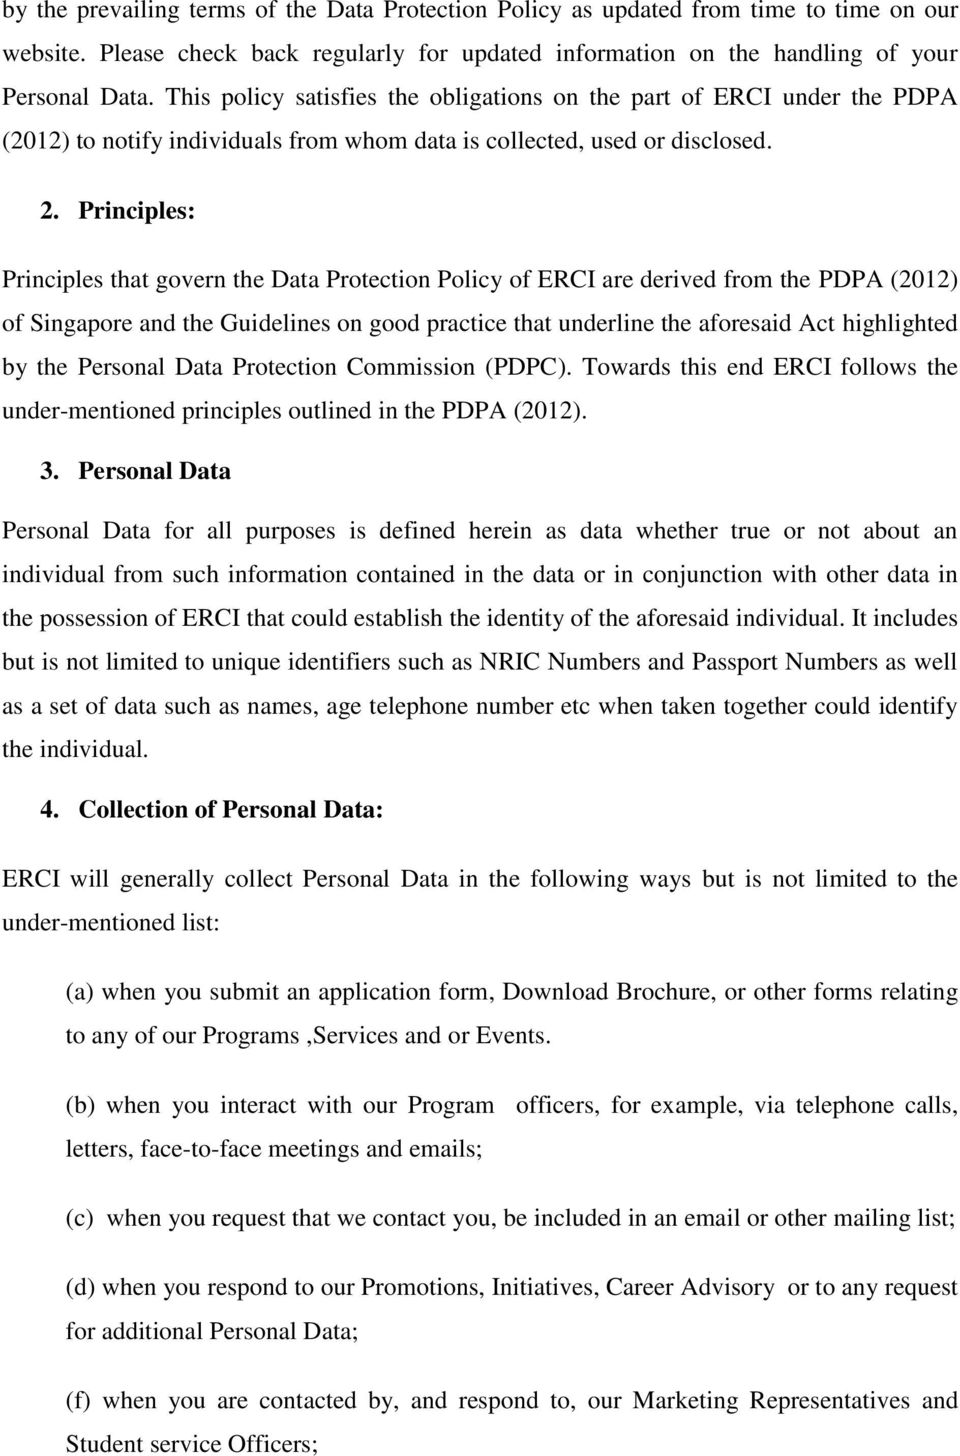 Principles: Principles that govern the Data Protection Policy of ERCI are derived from the PDPA (2012) of Singapore and the Guidelines on good practice that underline the aforesaid Act highlighted by